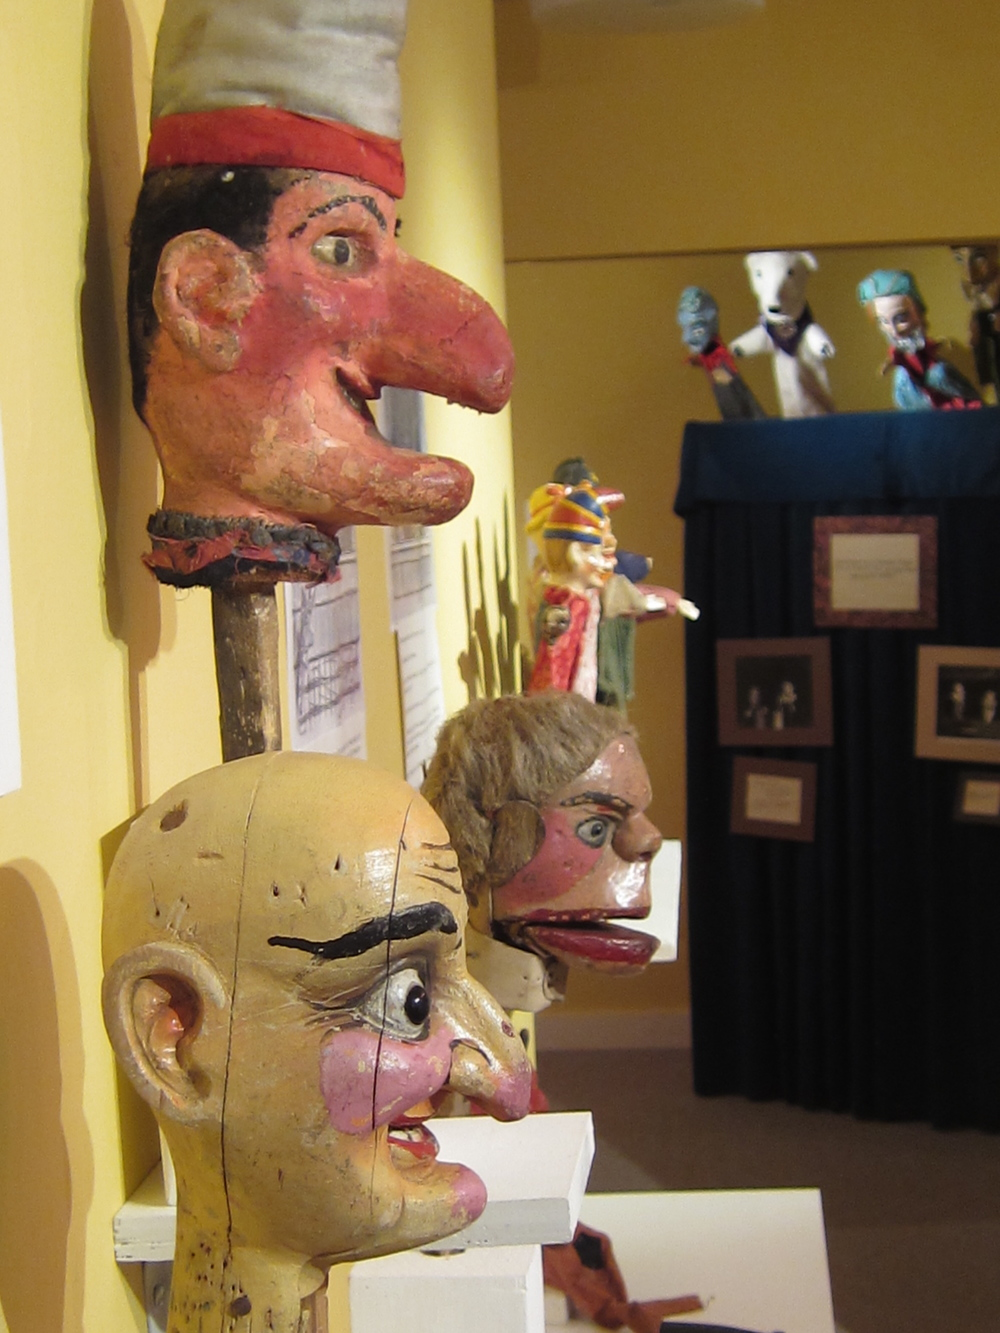 More puppets. The Ballard Puppetry Museum was founded by legendary puppetry teacher Bill Ballard.